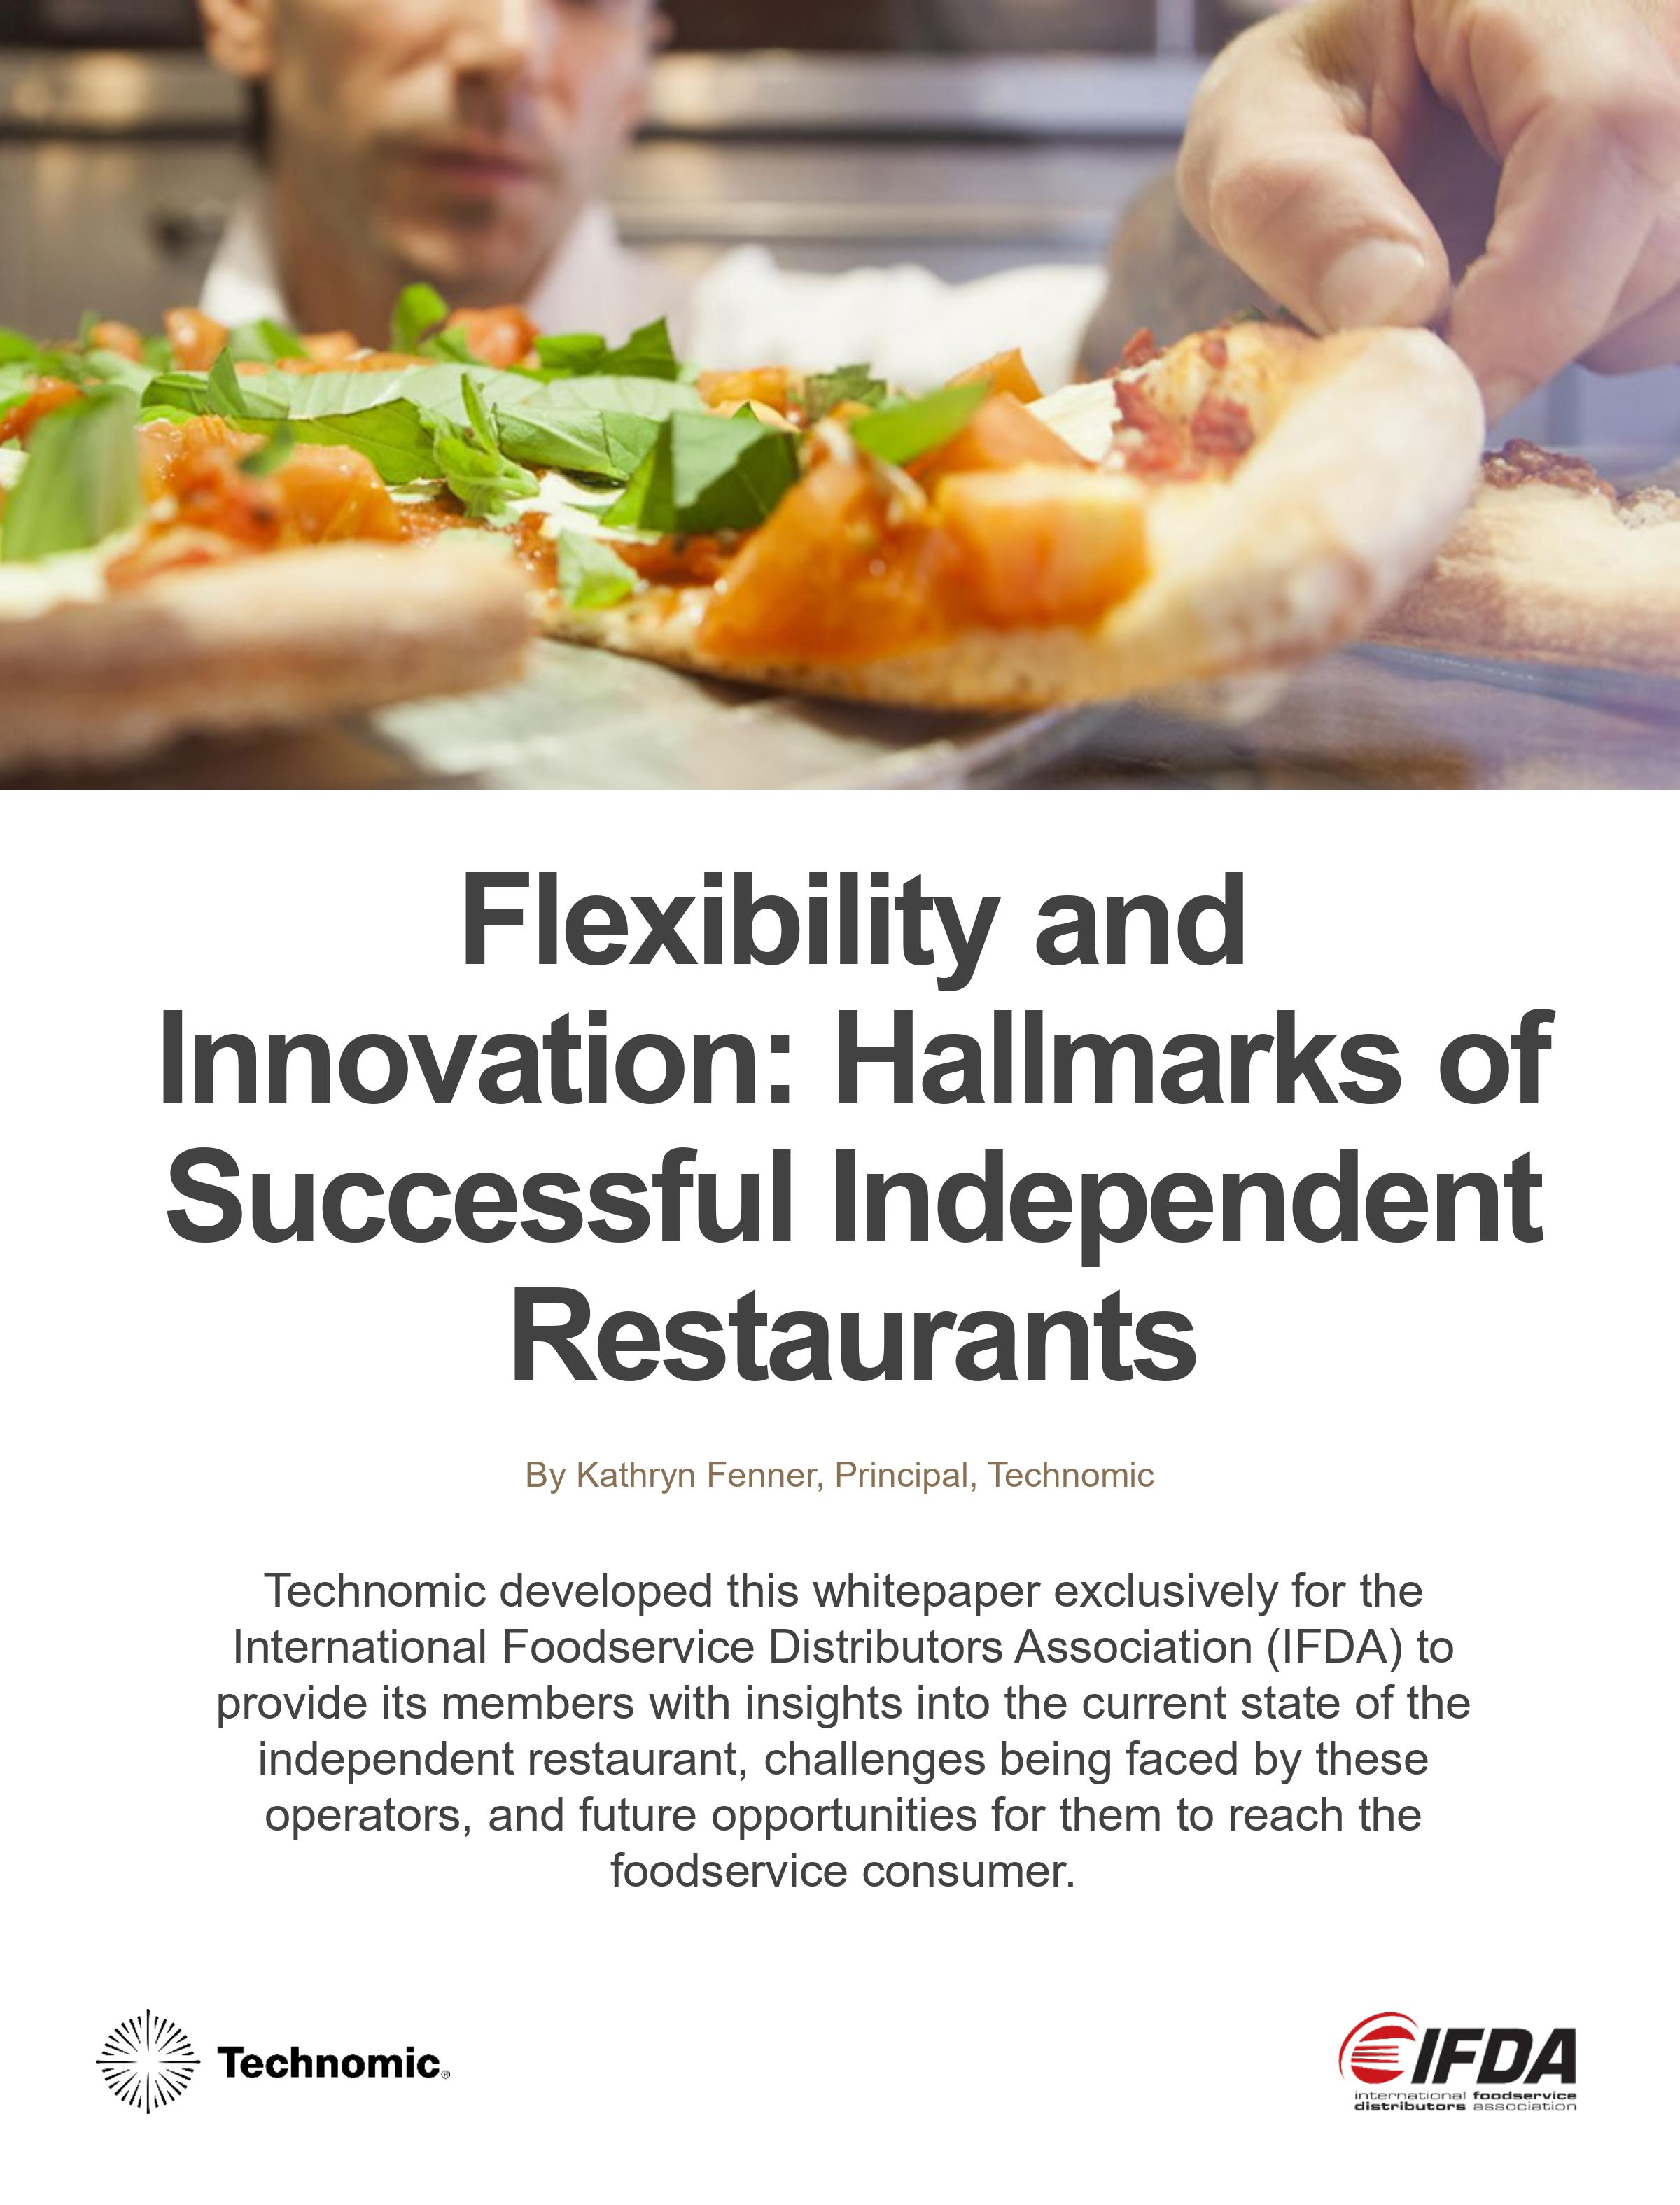 Thumbnail of Flexibility and Innovation: Hallmarks of